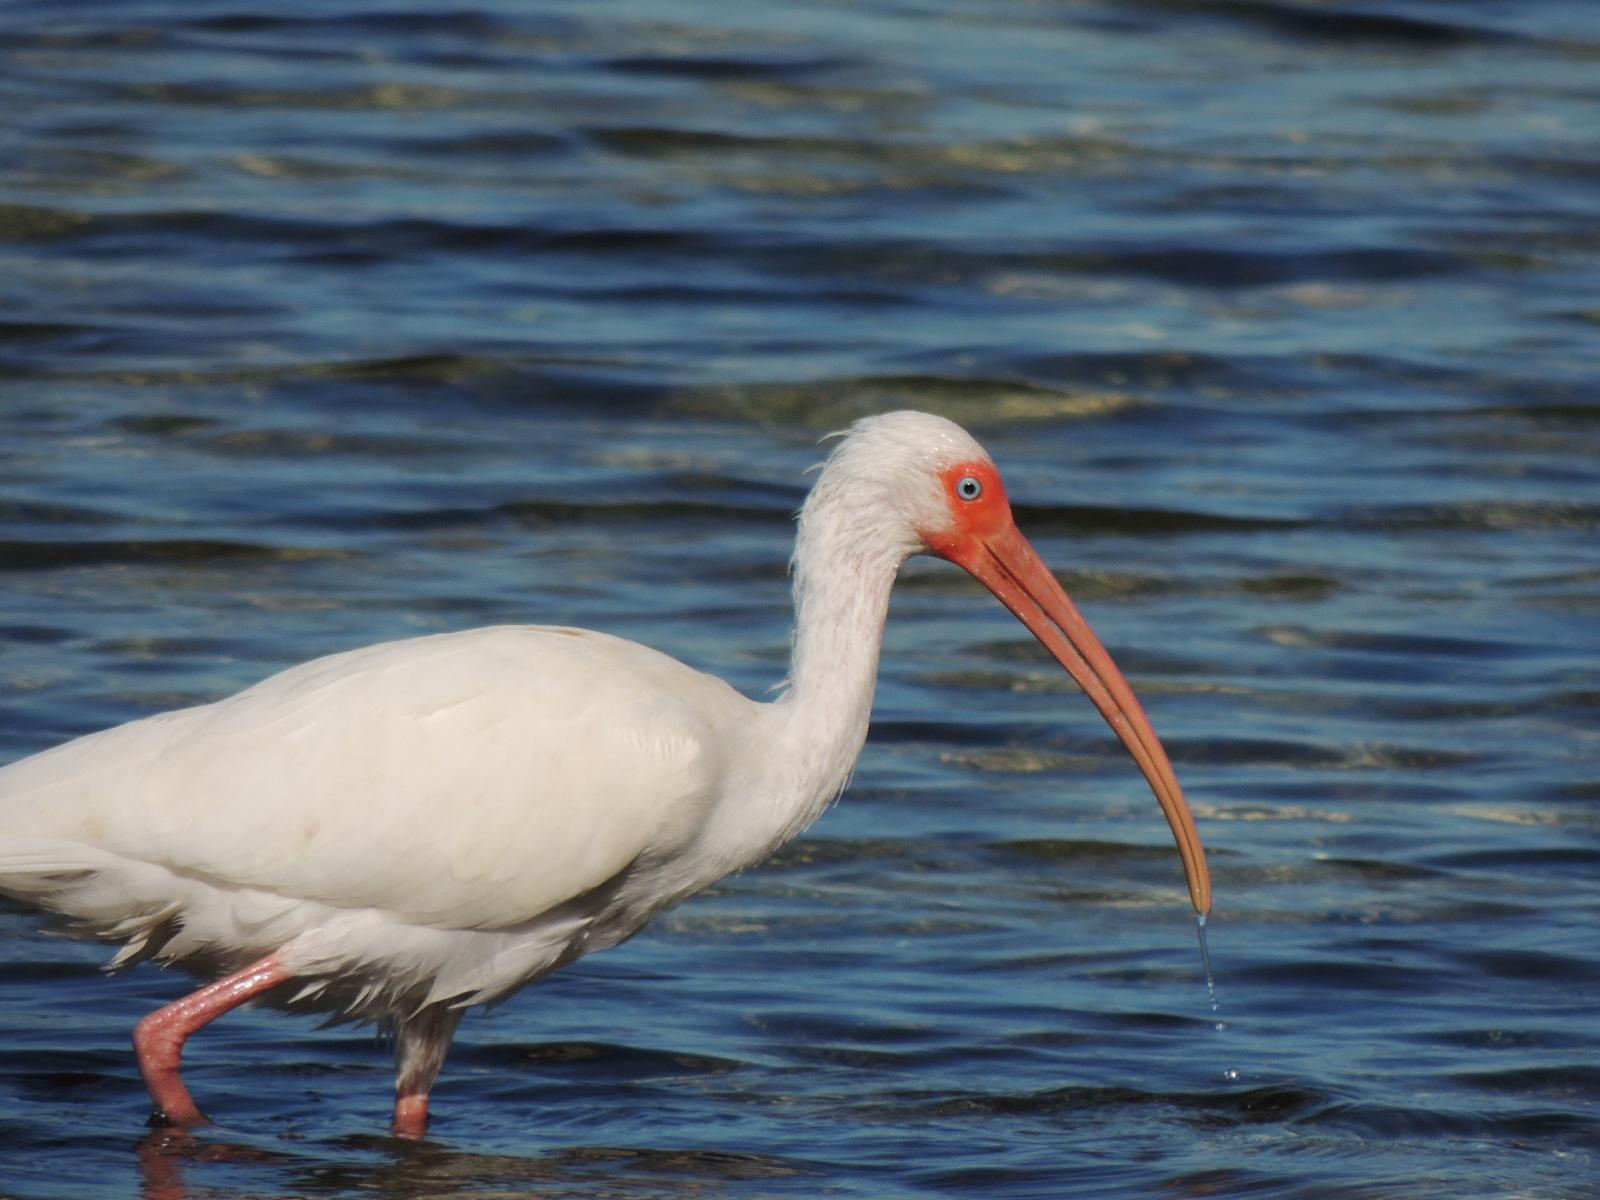 White Ibis Photo by Tony Heindel